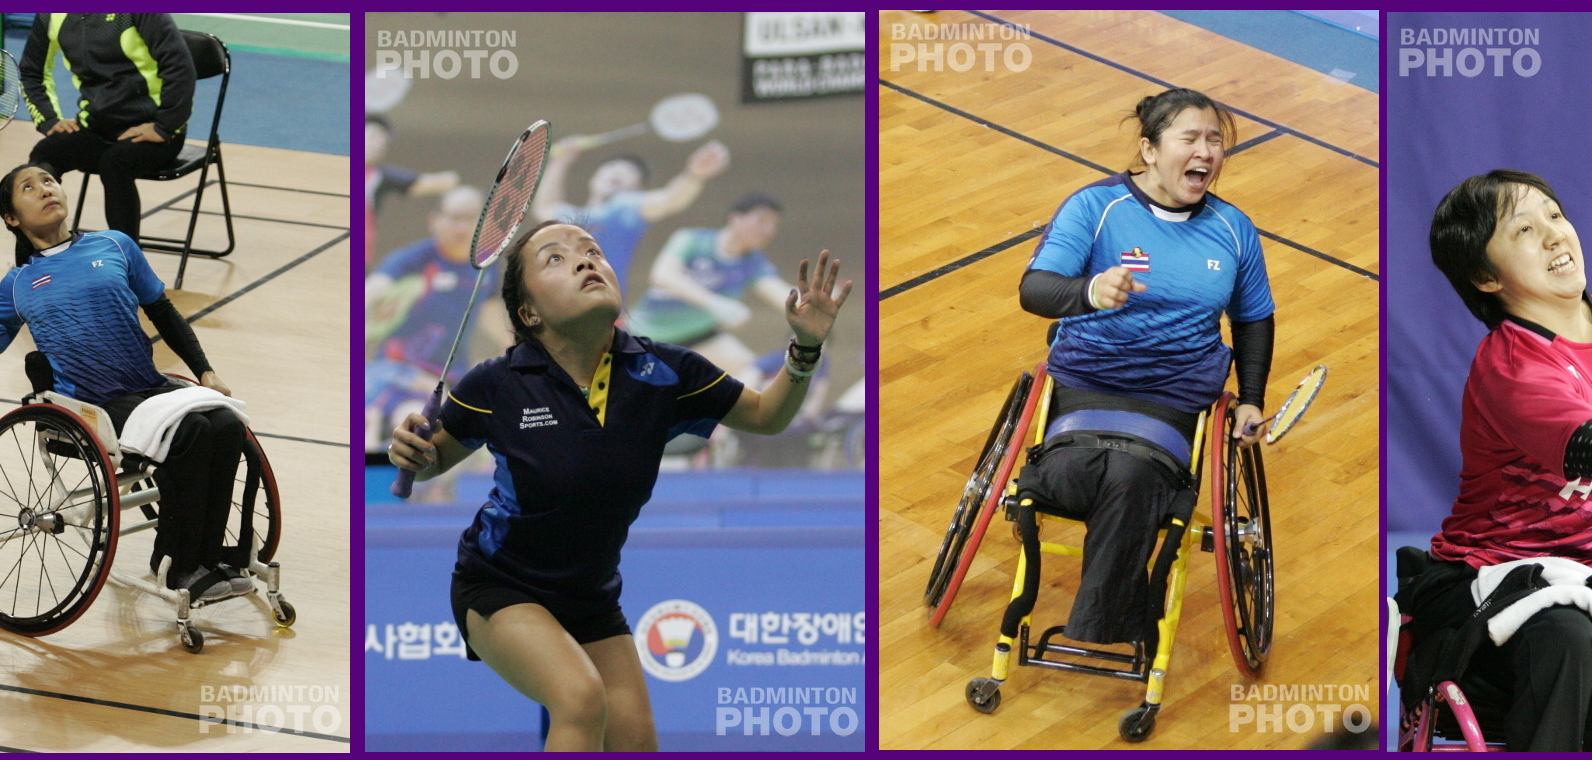 Two-time Para-Badminton World Championship triple-crown winner Rachel Choong is in the running with three wheelchair athletes to be named the brand-new Female Para-Badminton Player of the Year. Photos: Don Hearn […]